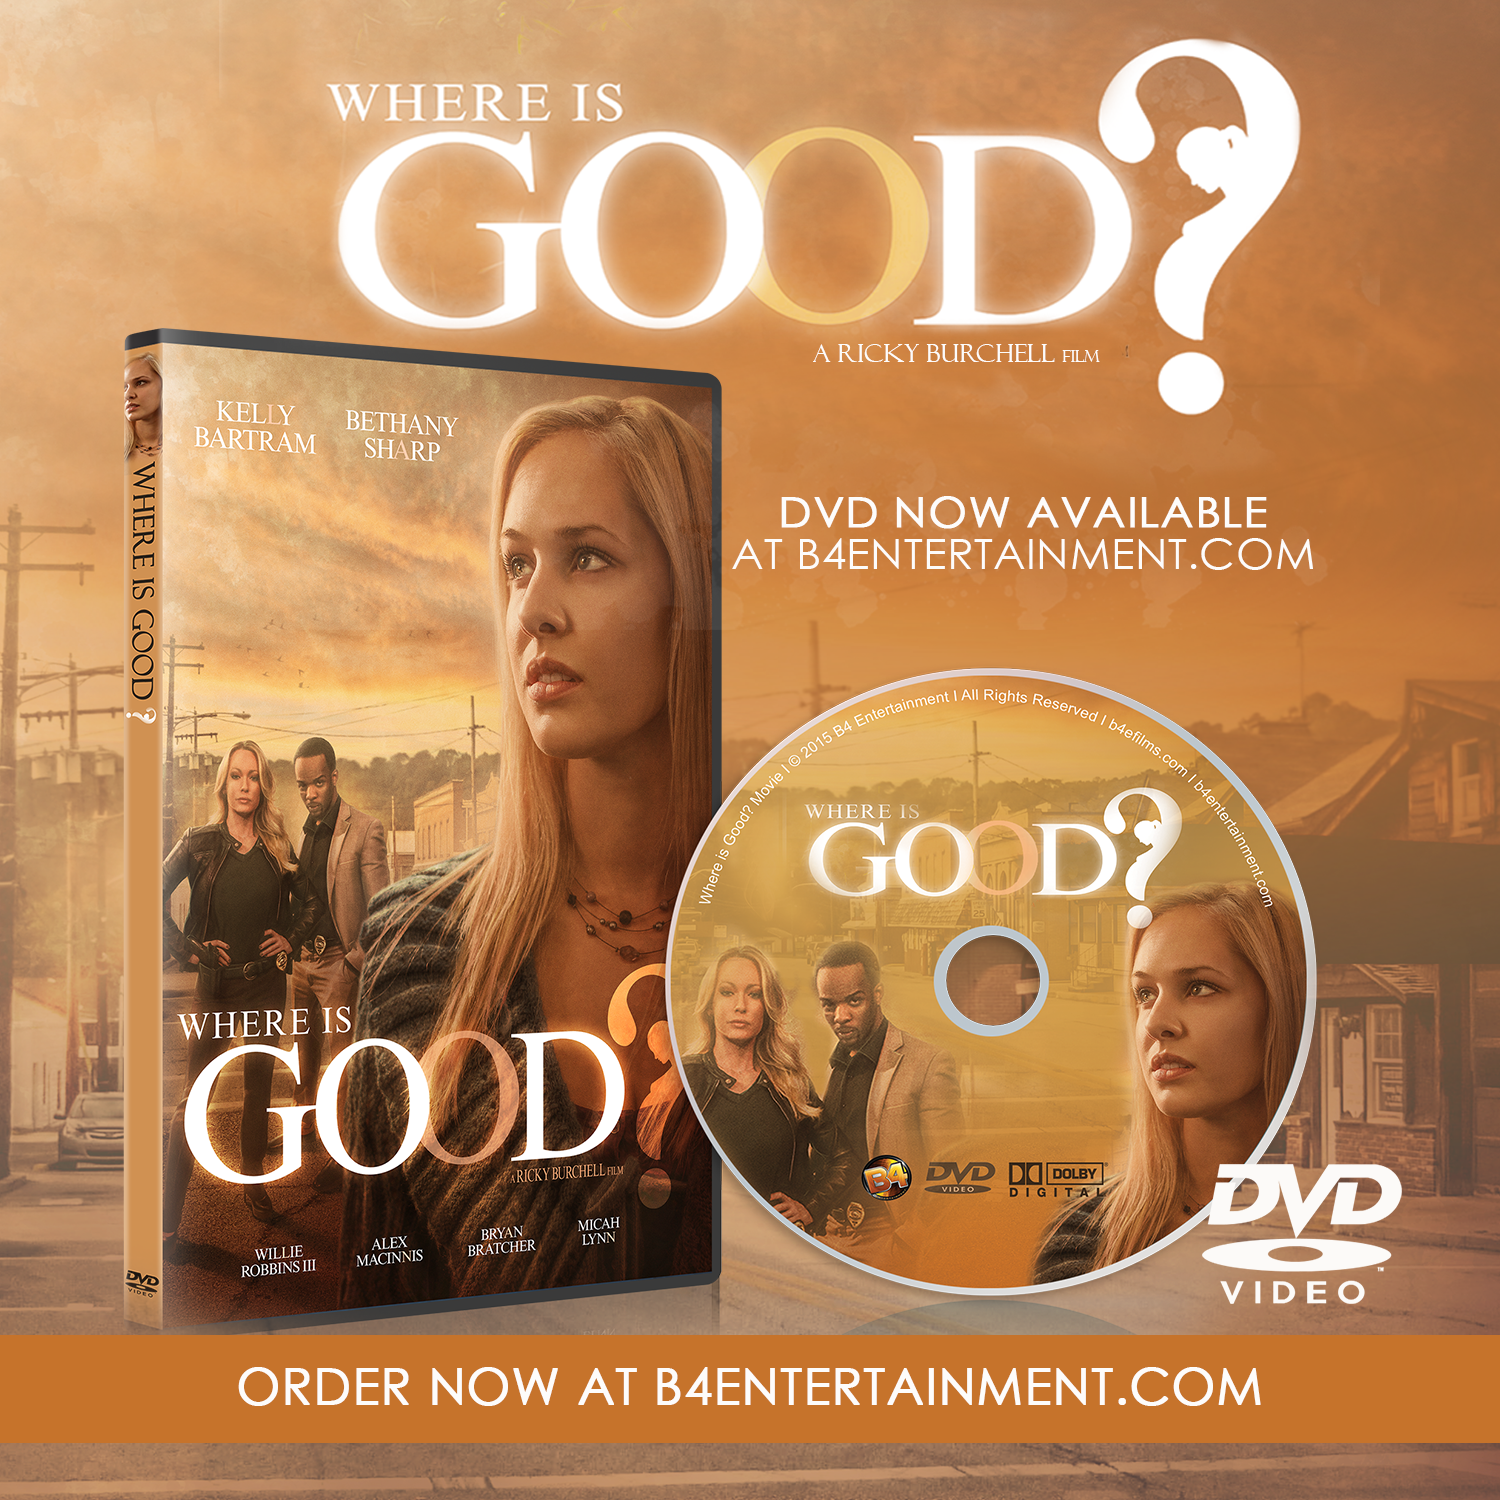 Where Is Good DVD Now Available!